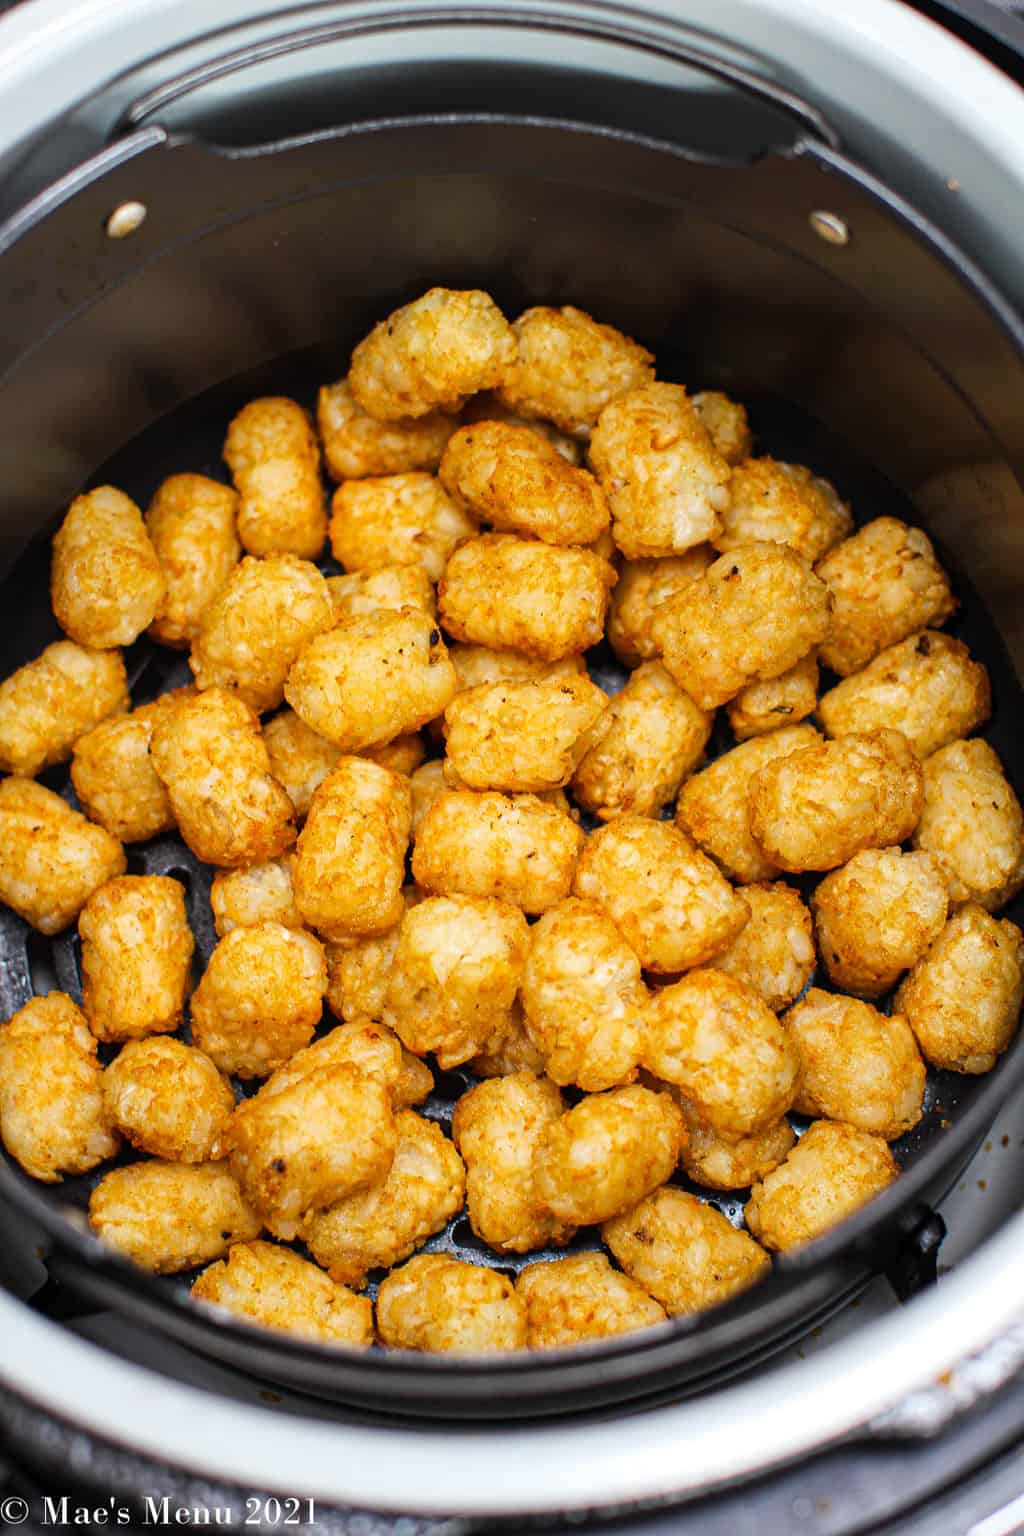 Tater tots cooking in an air fryer basket